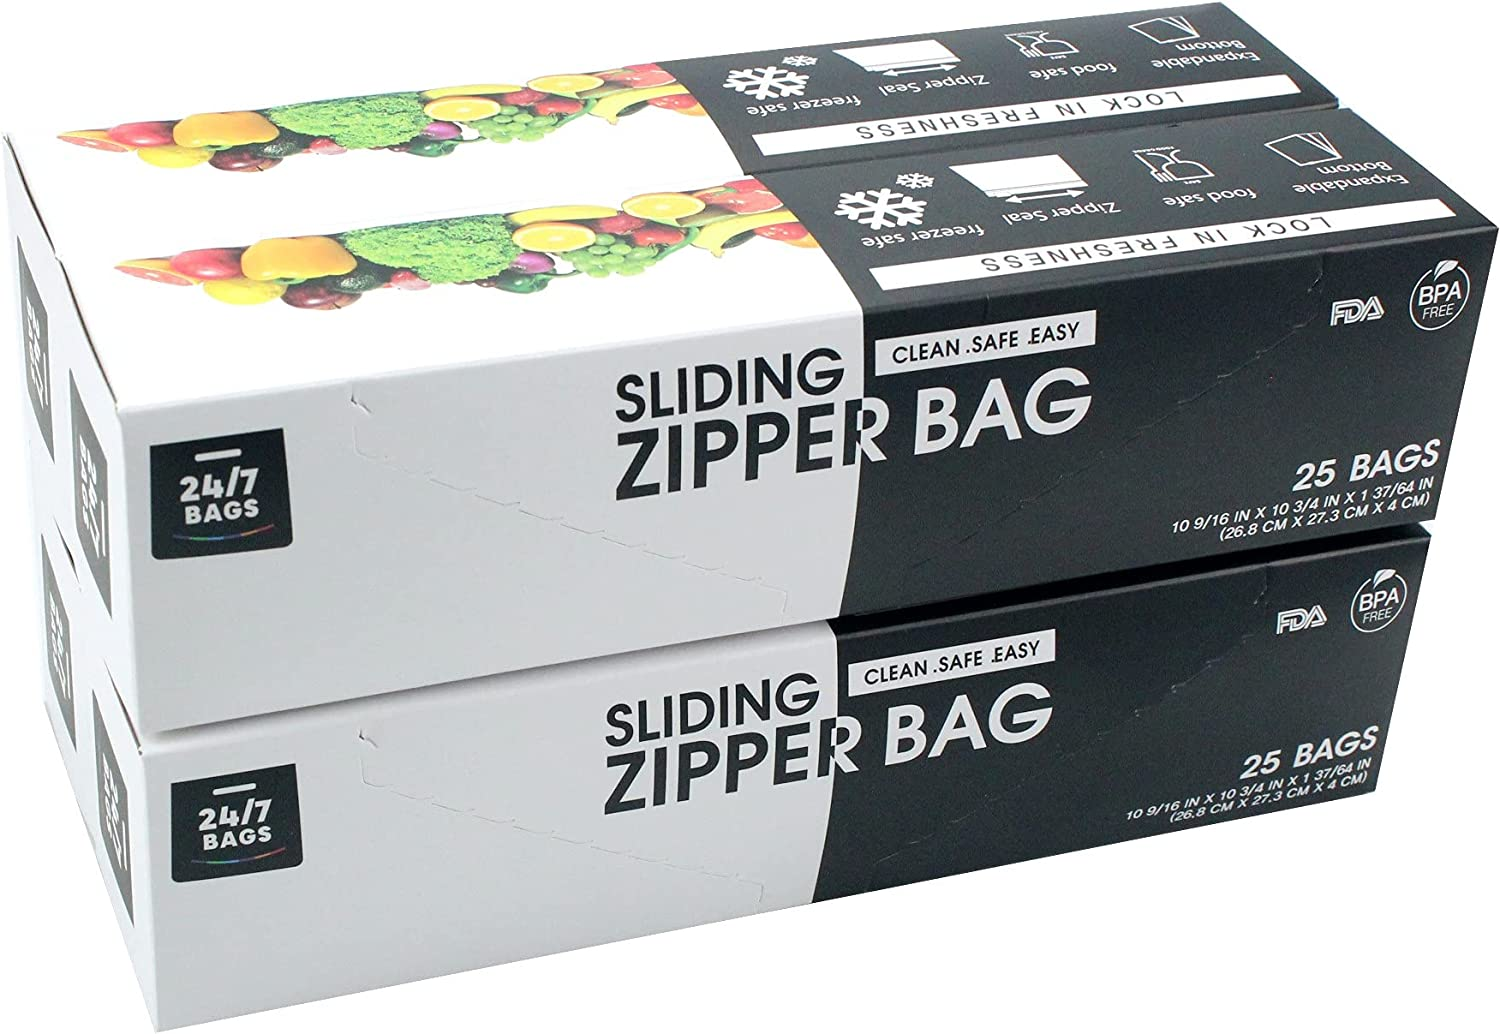 24/7 Bags – Slider Storage Bags, Gallon Size with Expandable Bottom, 100 Count (4 Packs of 25)